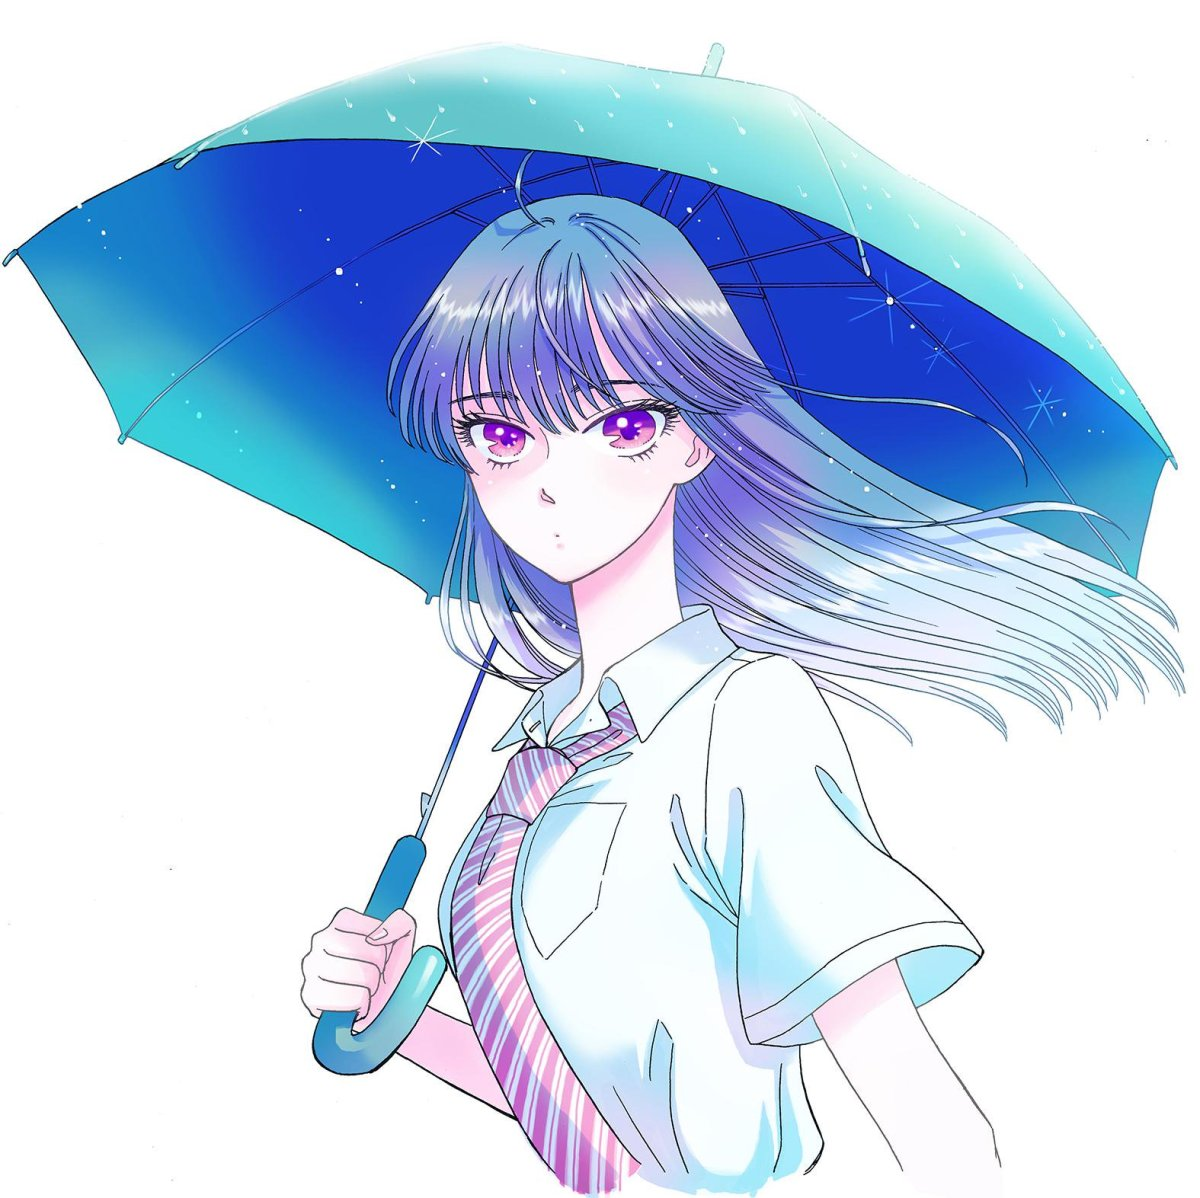 Anime Review: Koi wa Ameagari no You ni (After the Rain)